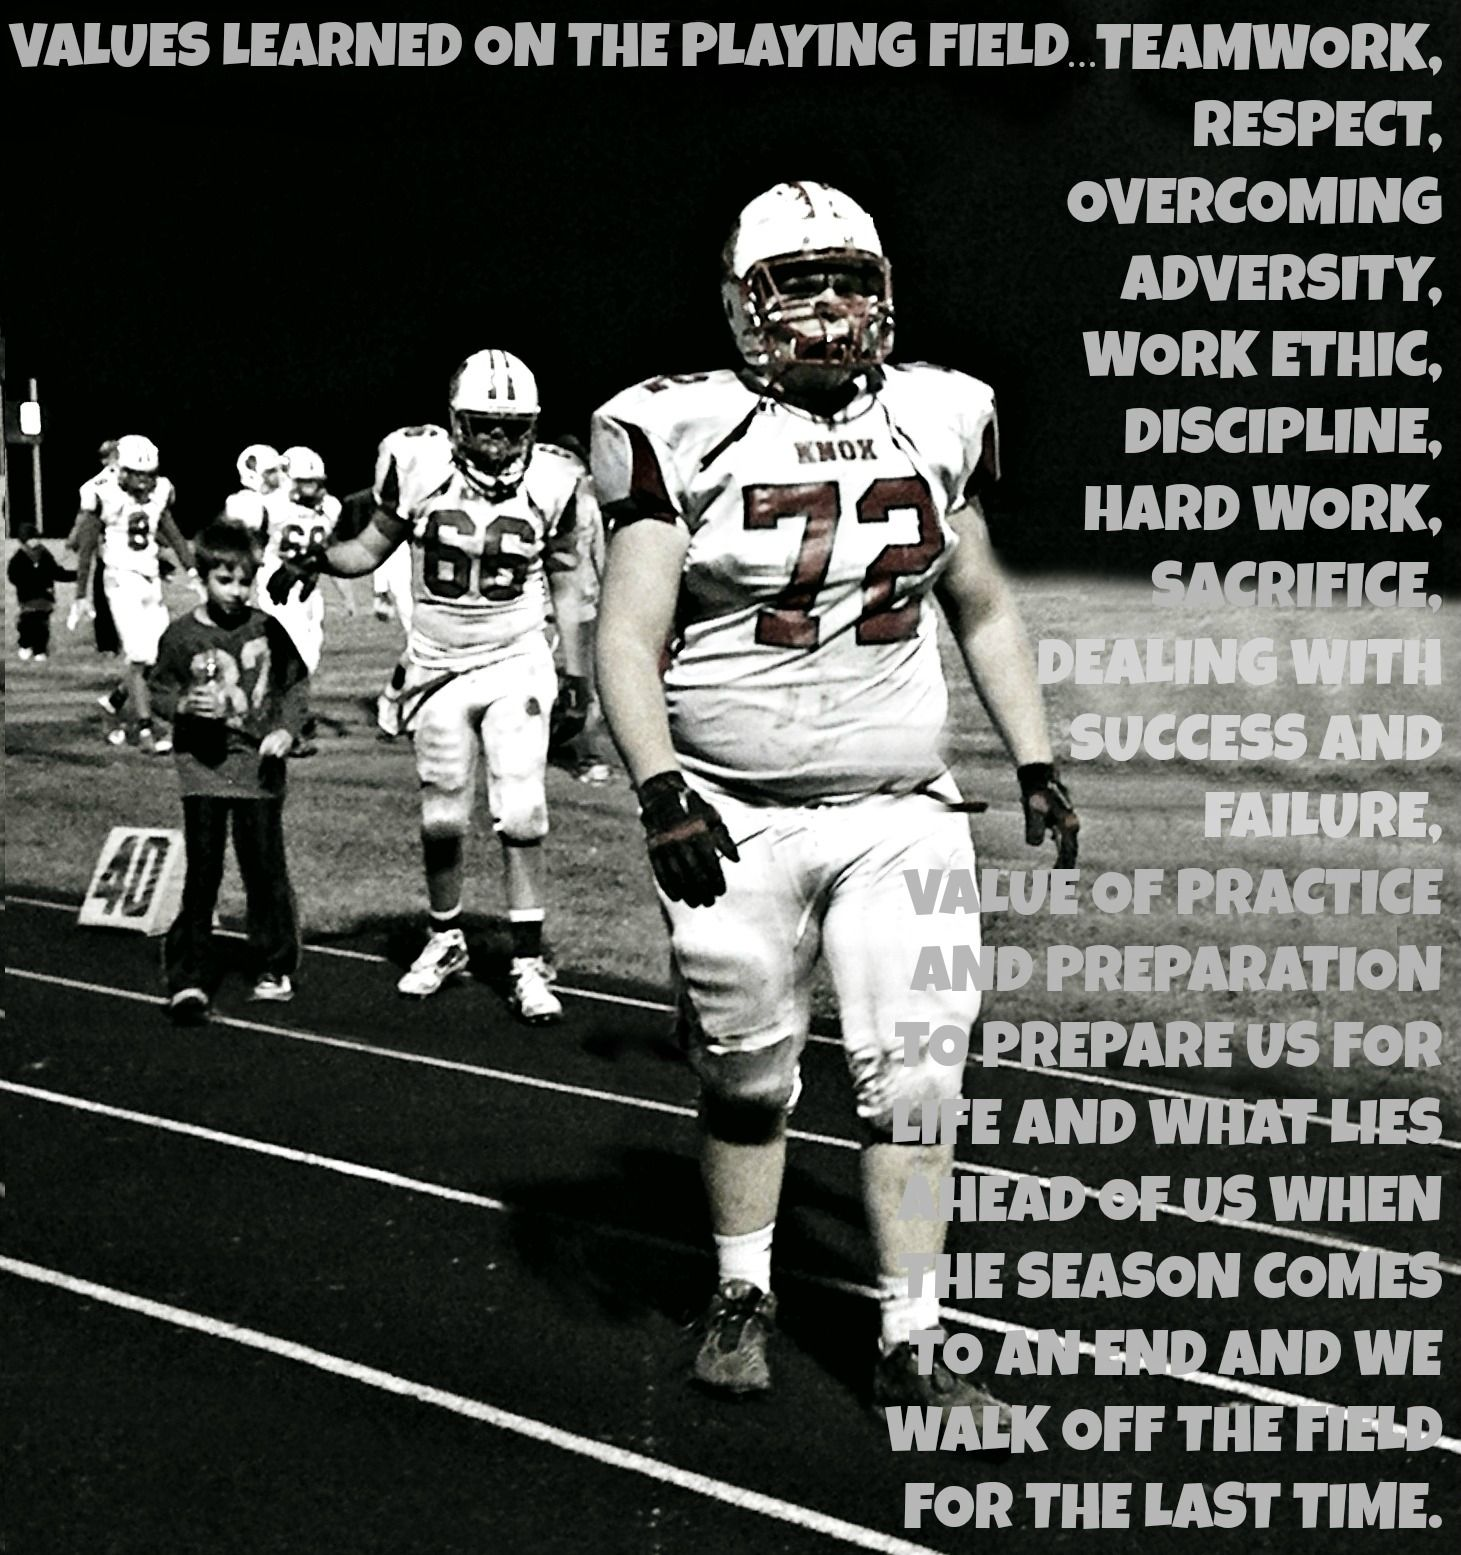 Inspirational Values Learned On The Playing Field Teamwork Respect Overcoming Advers Inspirational Football Quotes Football Season Quote Senior Football